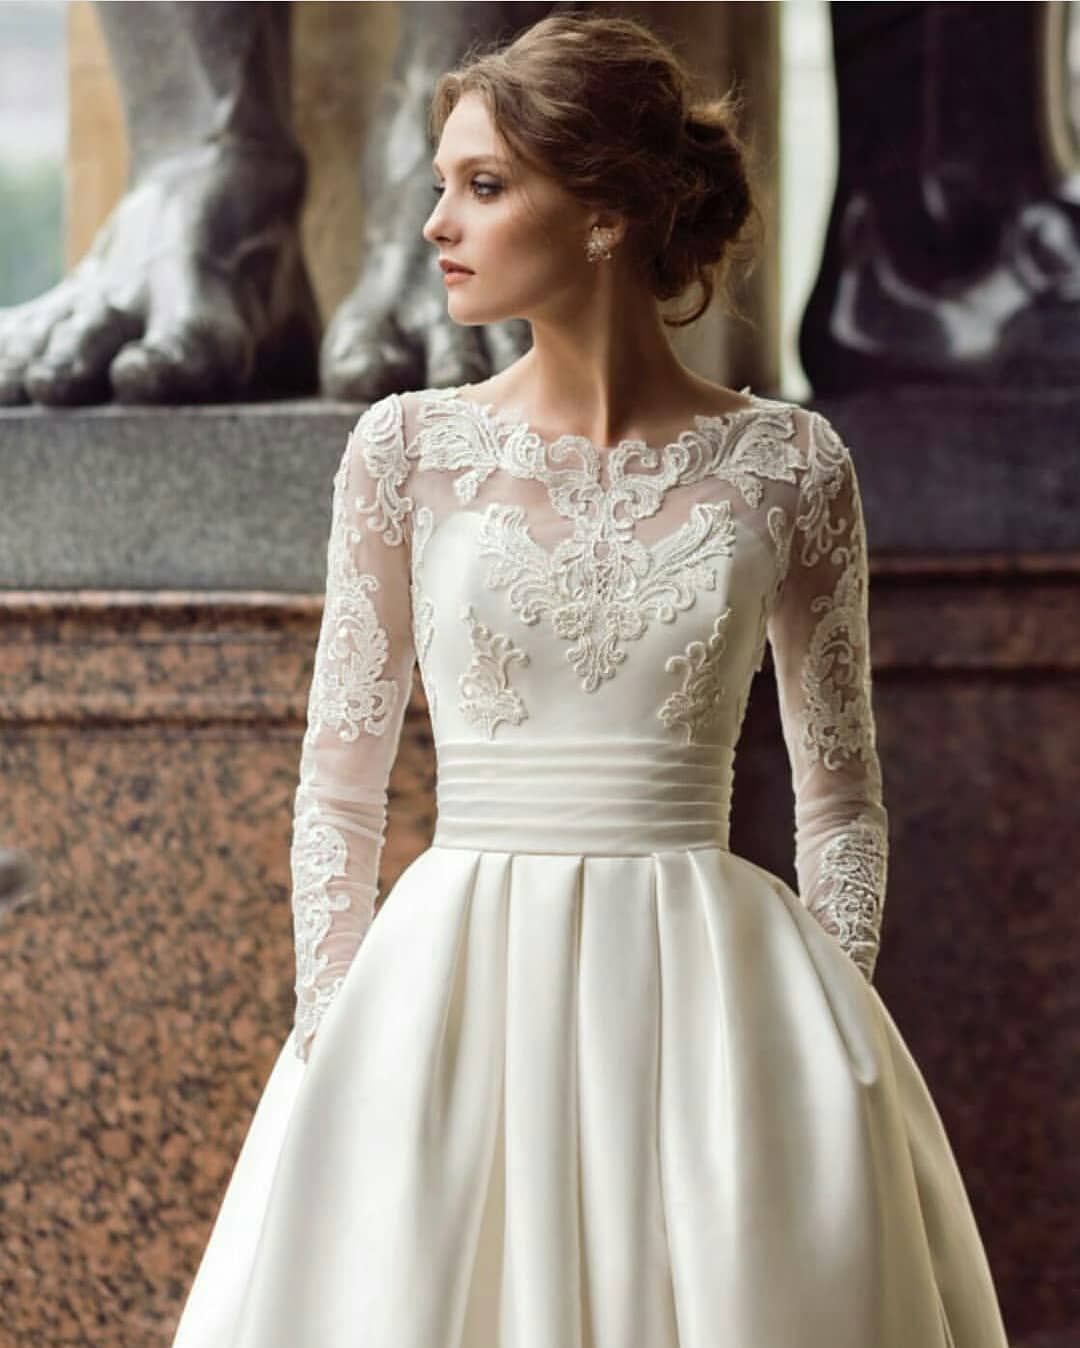 2019 New Designer Sexy Backless Half Sleeves Women Reception Wedding Dresses Floor Length Bridal Gowns Sleeves Cheap Custom Made Firm In Structure Weddings & Events